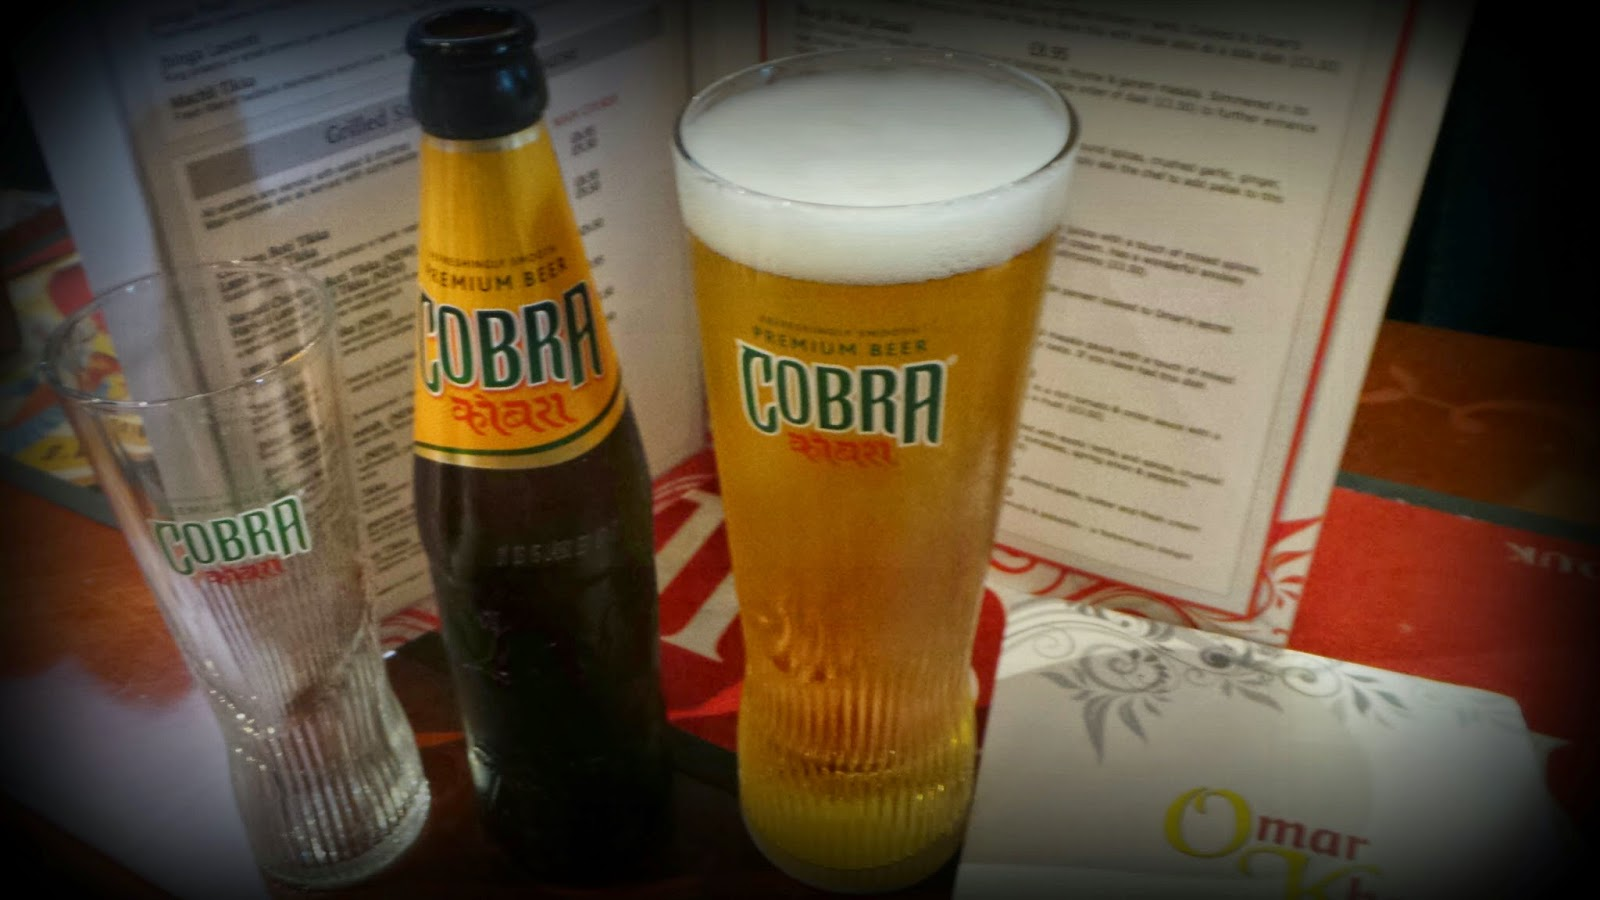 Omar Khans curry beer